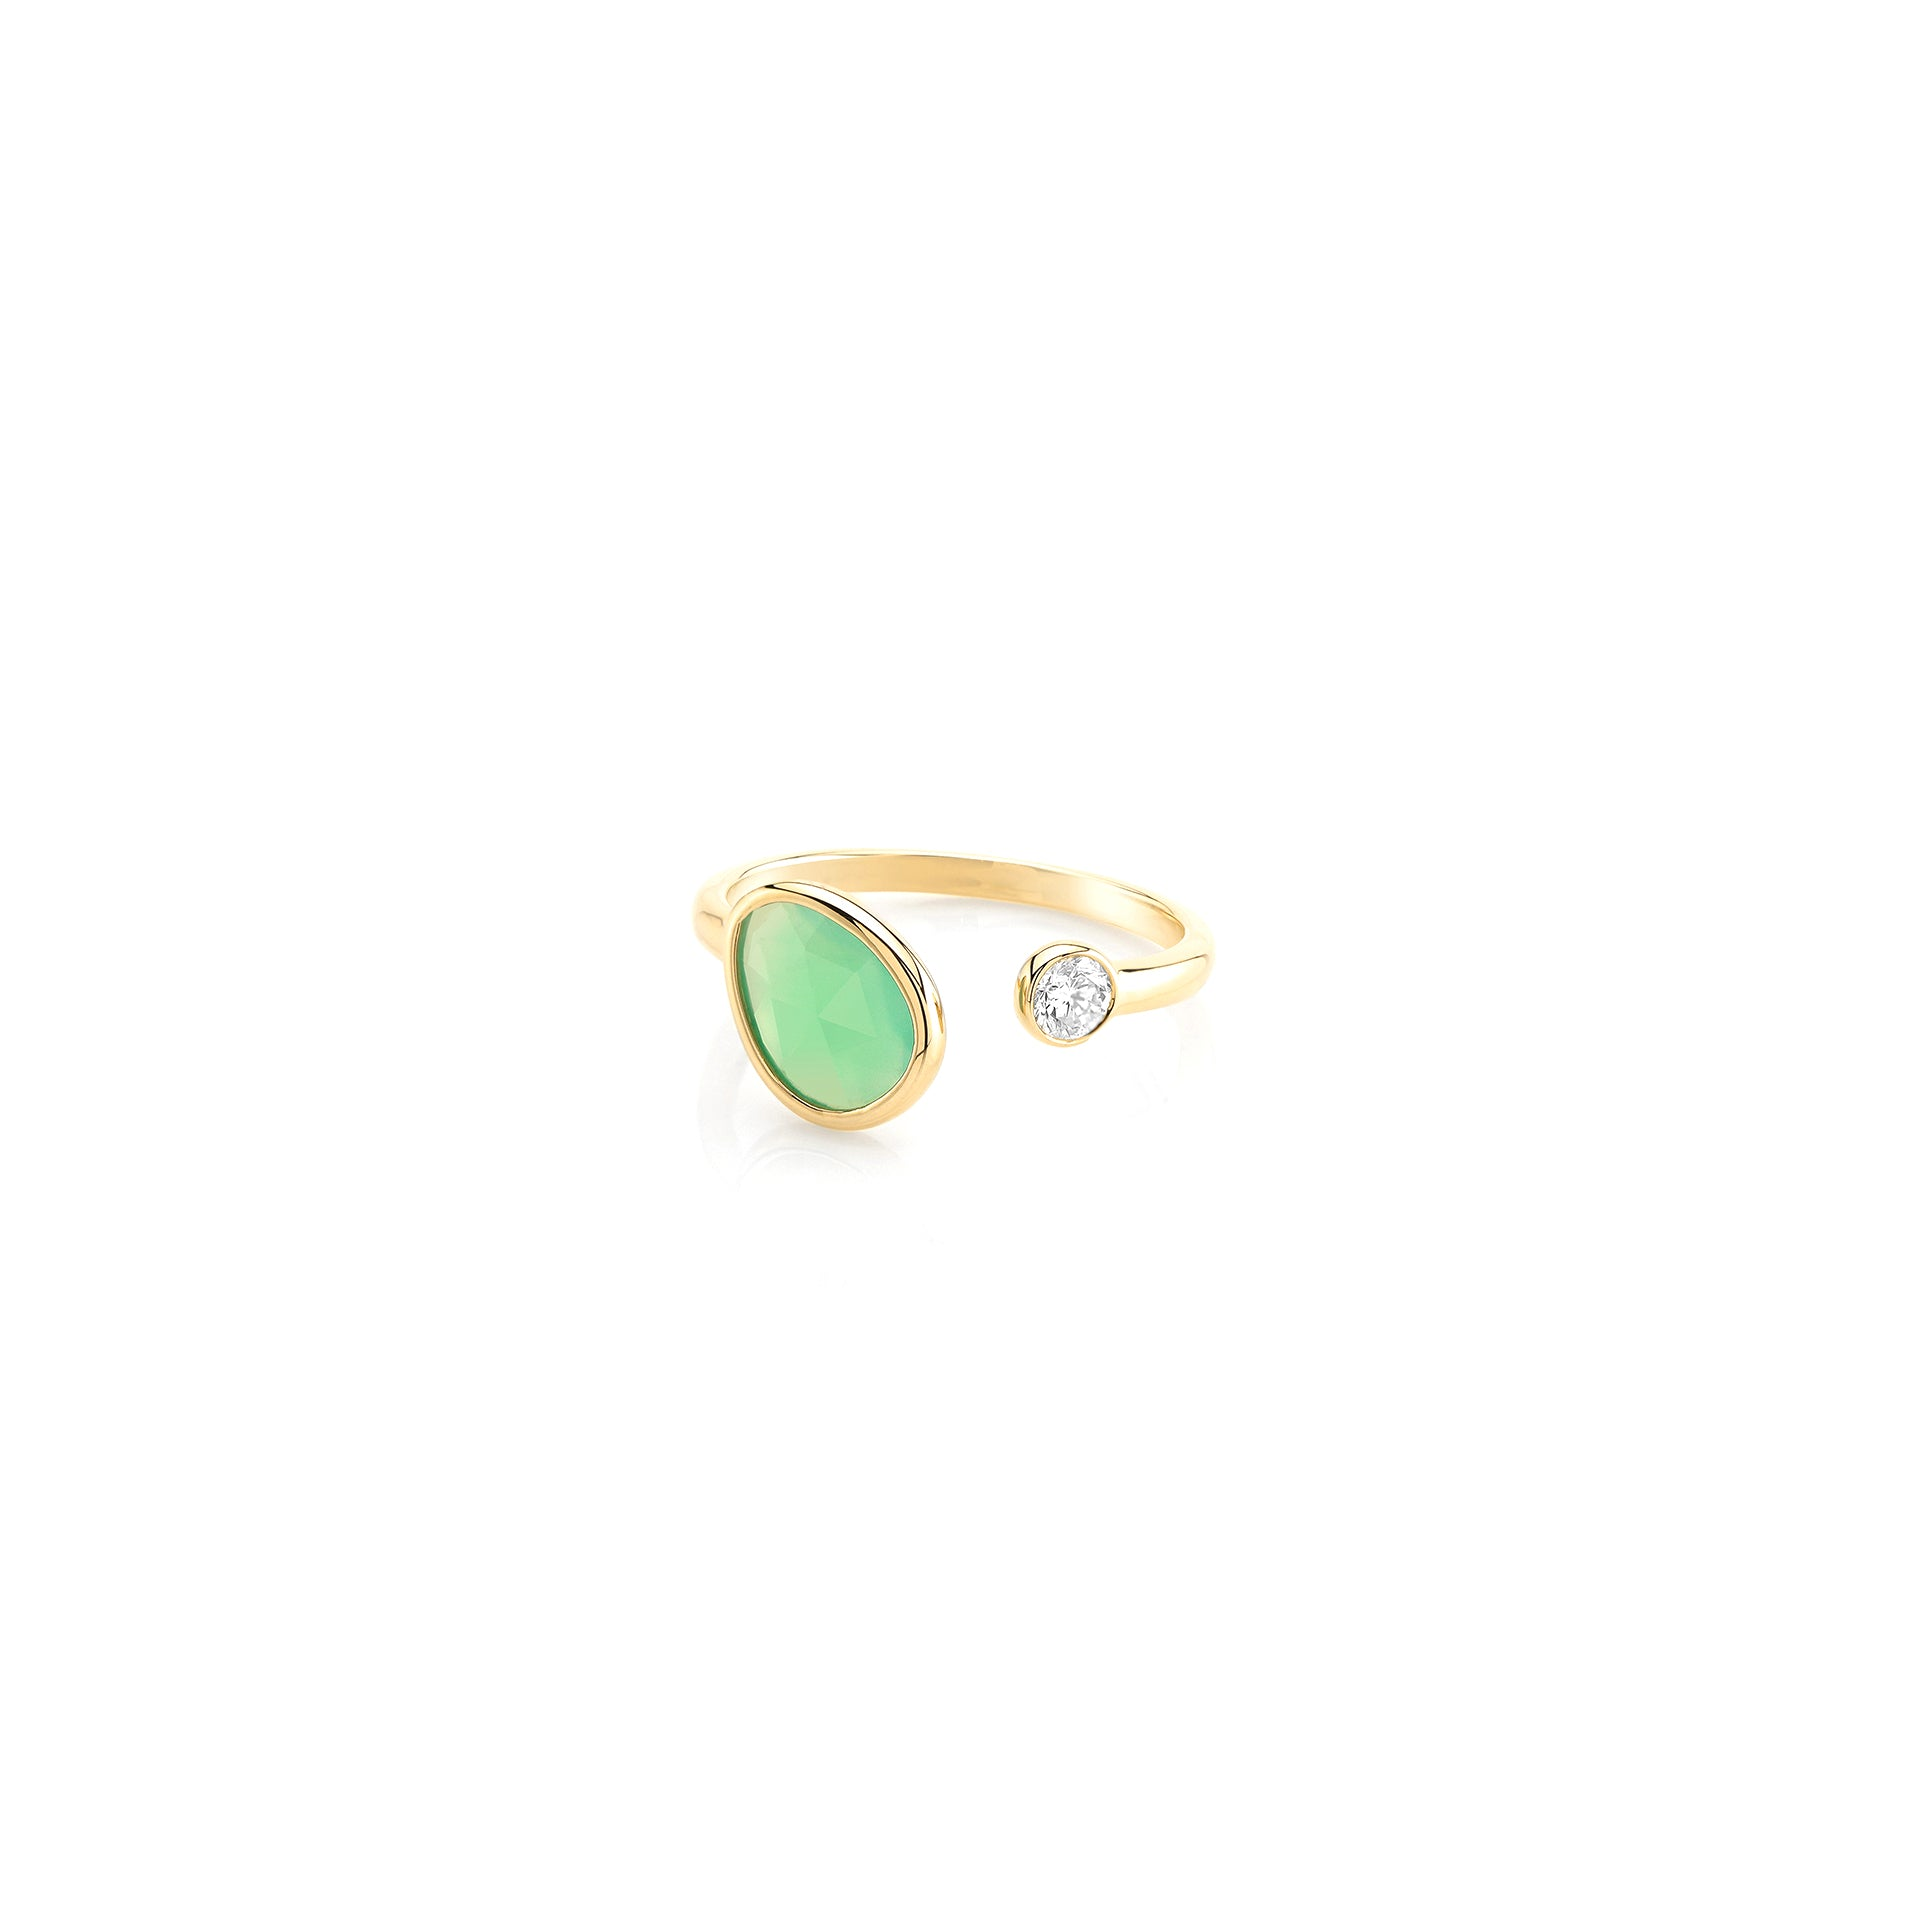 Simply Nina ring in 18k yellow gold with Chrysoprase stone and diamond - Al Zain Jewellery